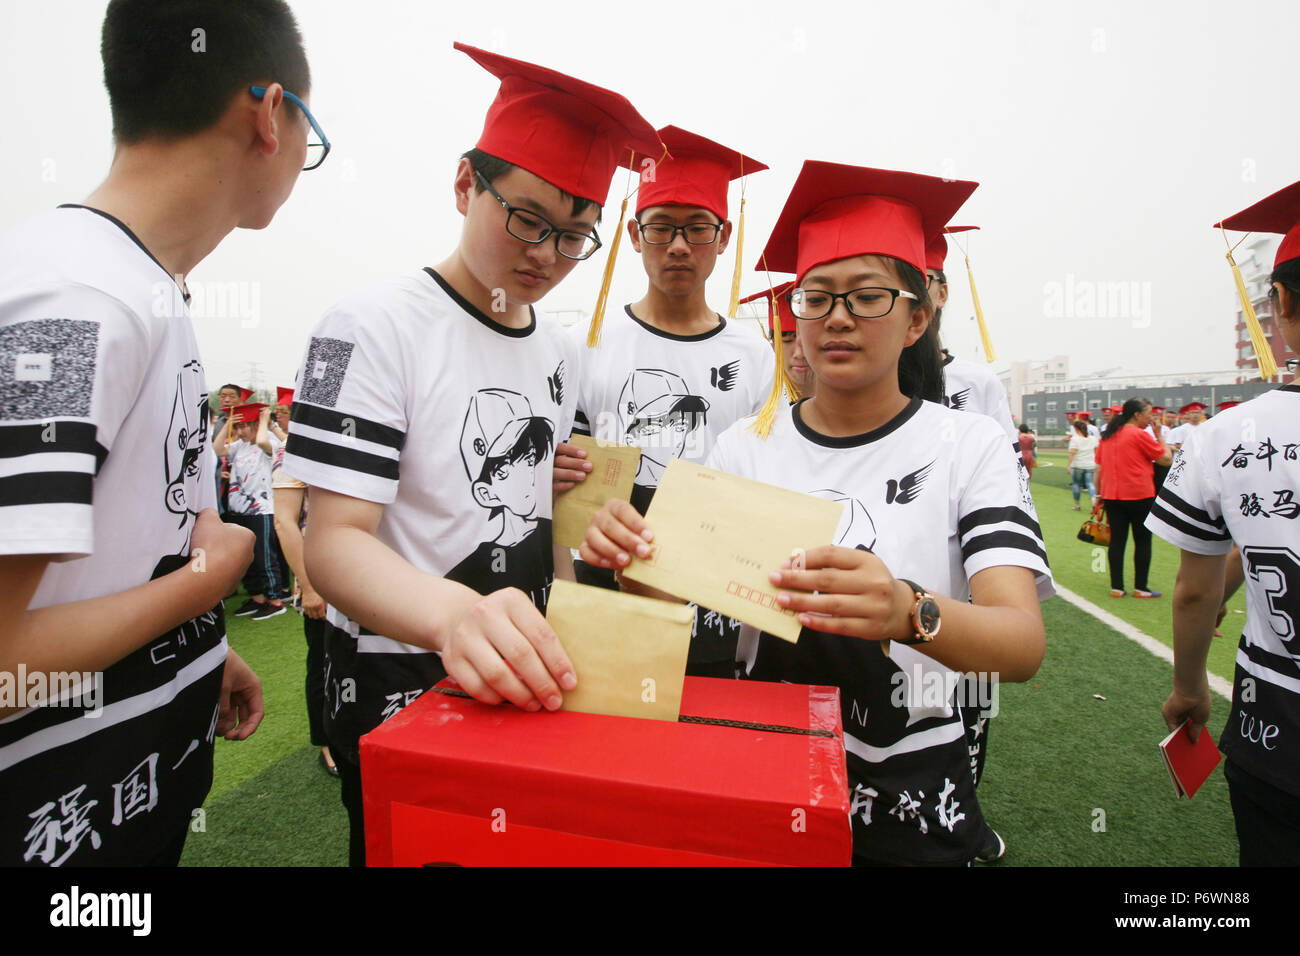 Changzhi, China's Shanxi Province. 3rd July, 2018. Students cast letters written by themselves to the future into a box at their coming-of-age ceremony held at Wuxiang high school in Wuxiang County, north China's Shanxi Province, July 3, 2018. Credit: Li Yong/Xinhua/Alamy Live News - Stock Image